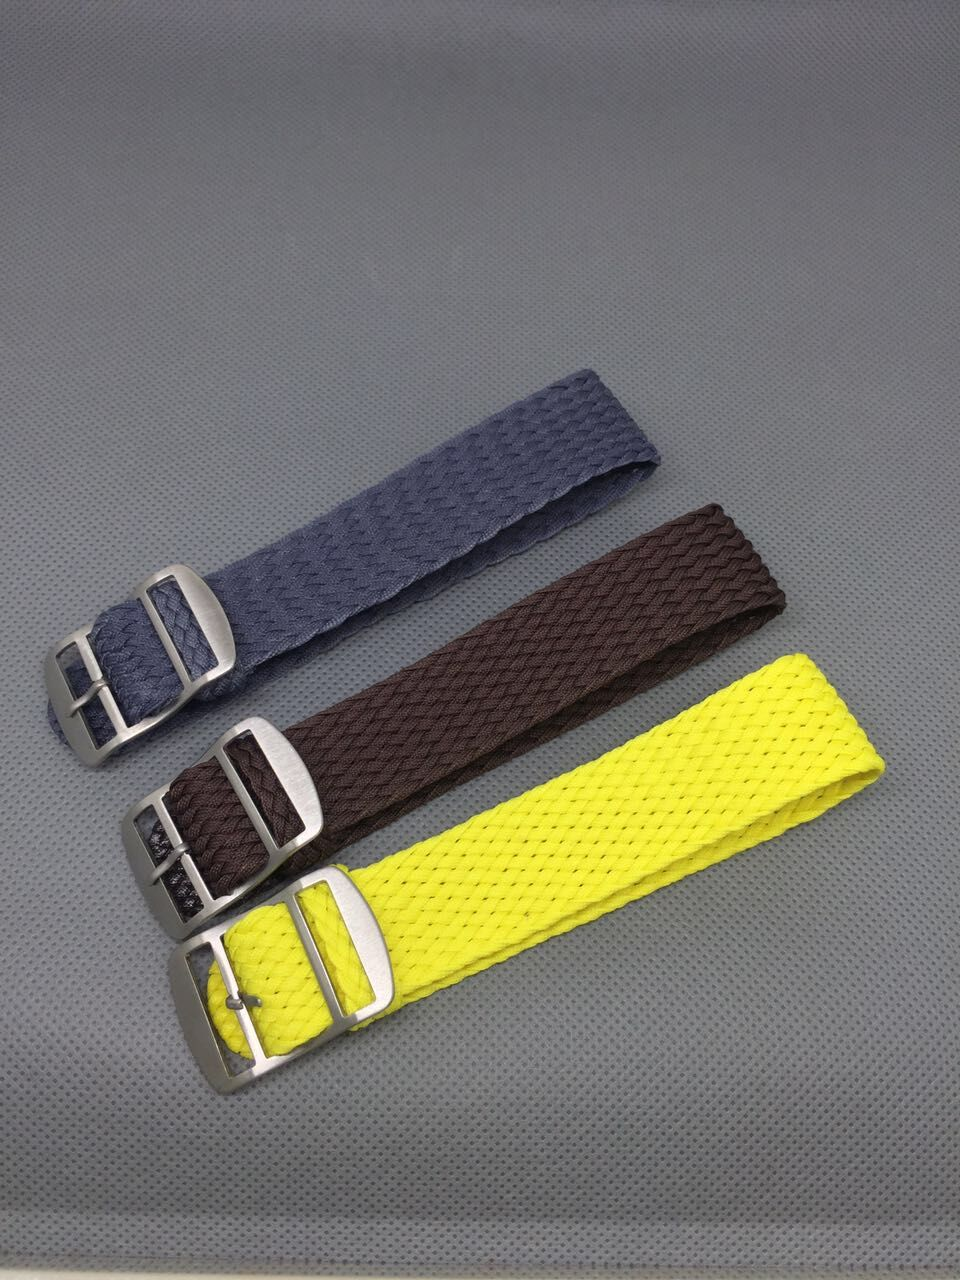 1PCS 18MM nylon straps perlon straps weave straps watch strap Watch band 12 colors available PS002 in Watchbands from Watches